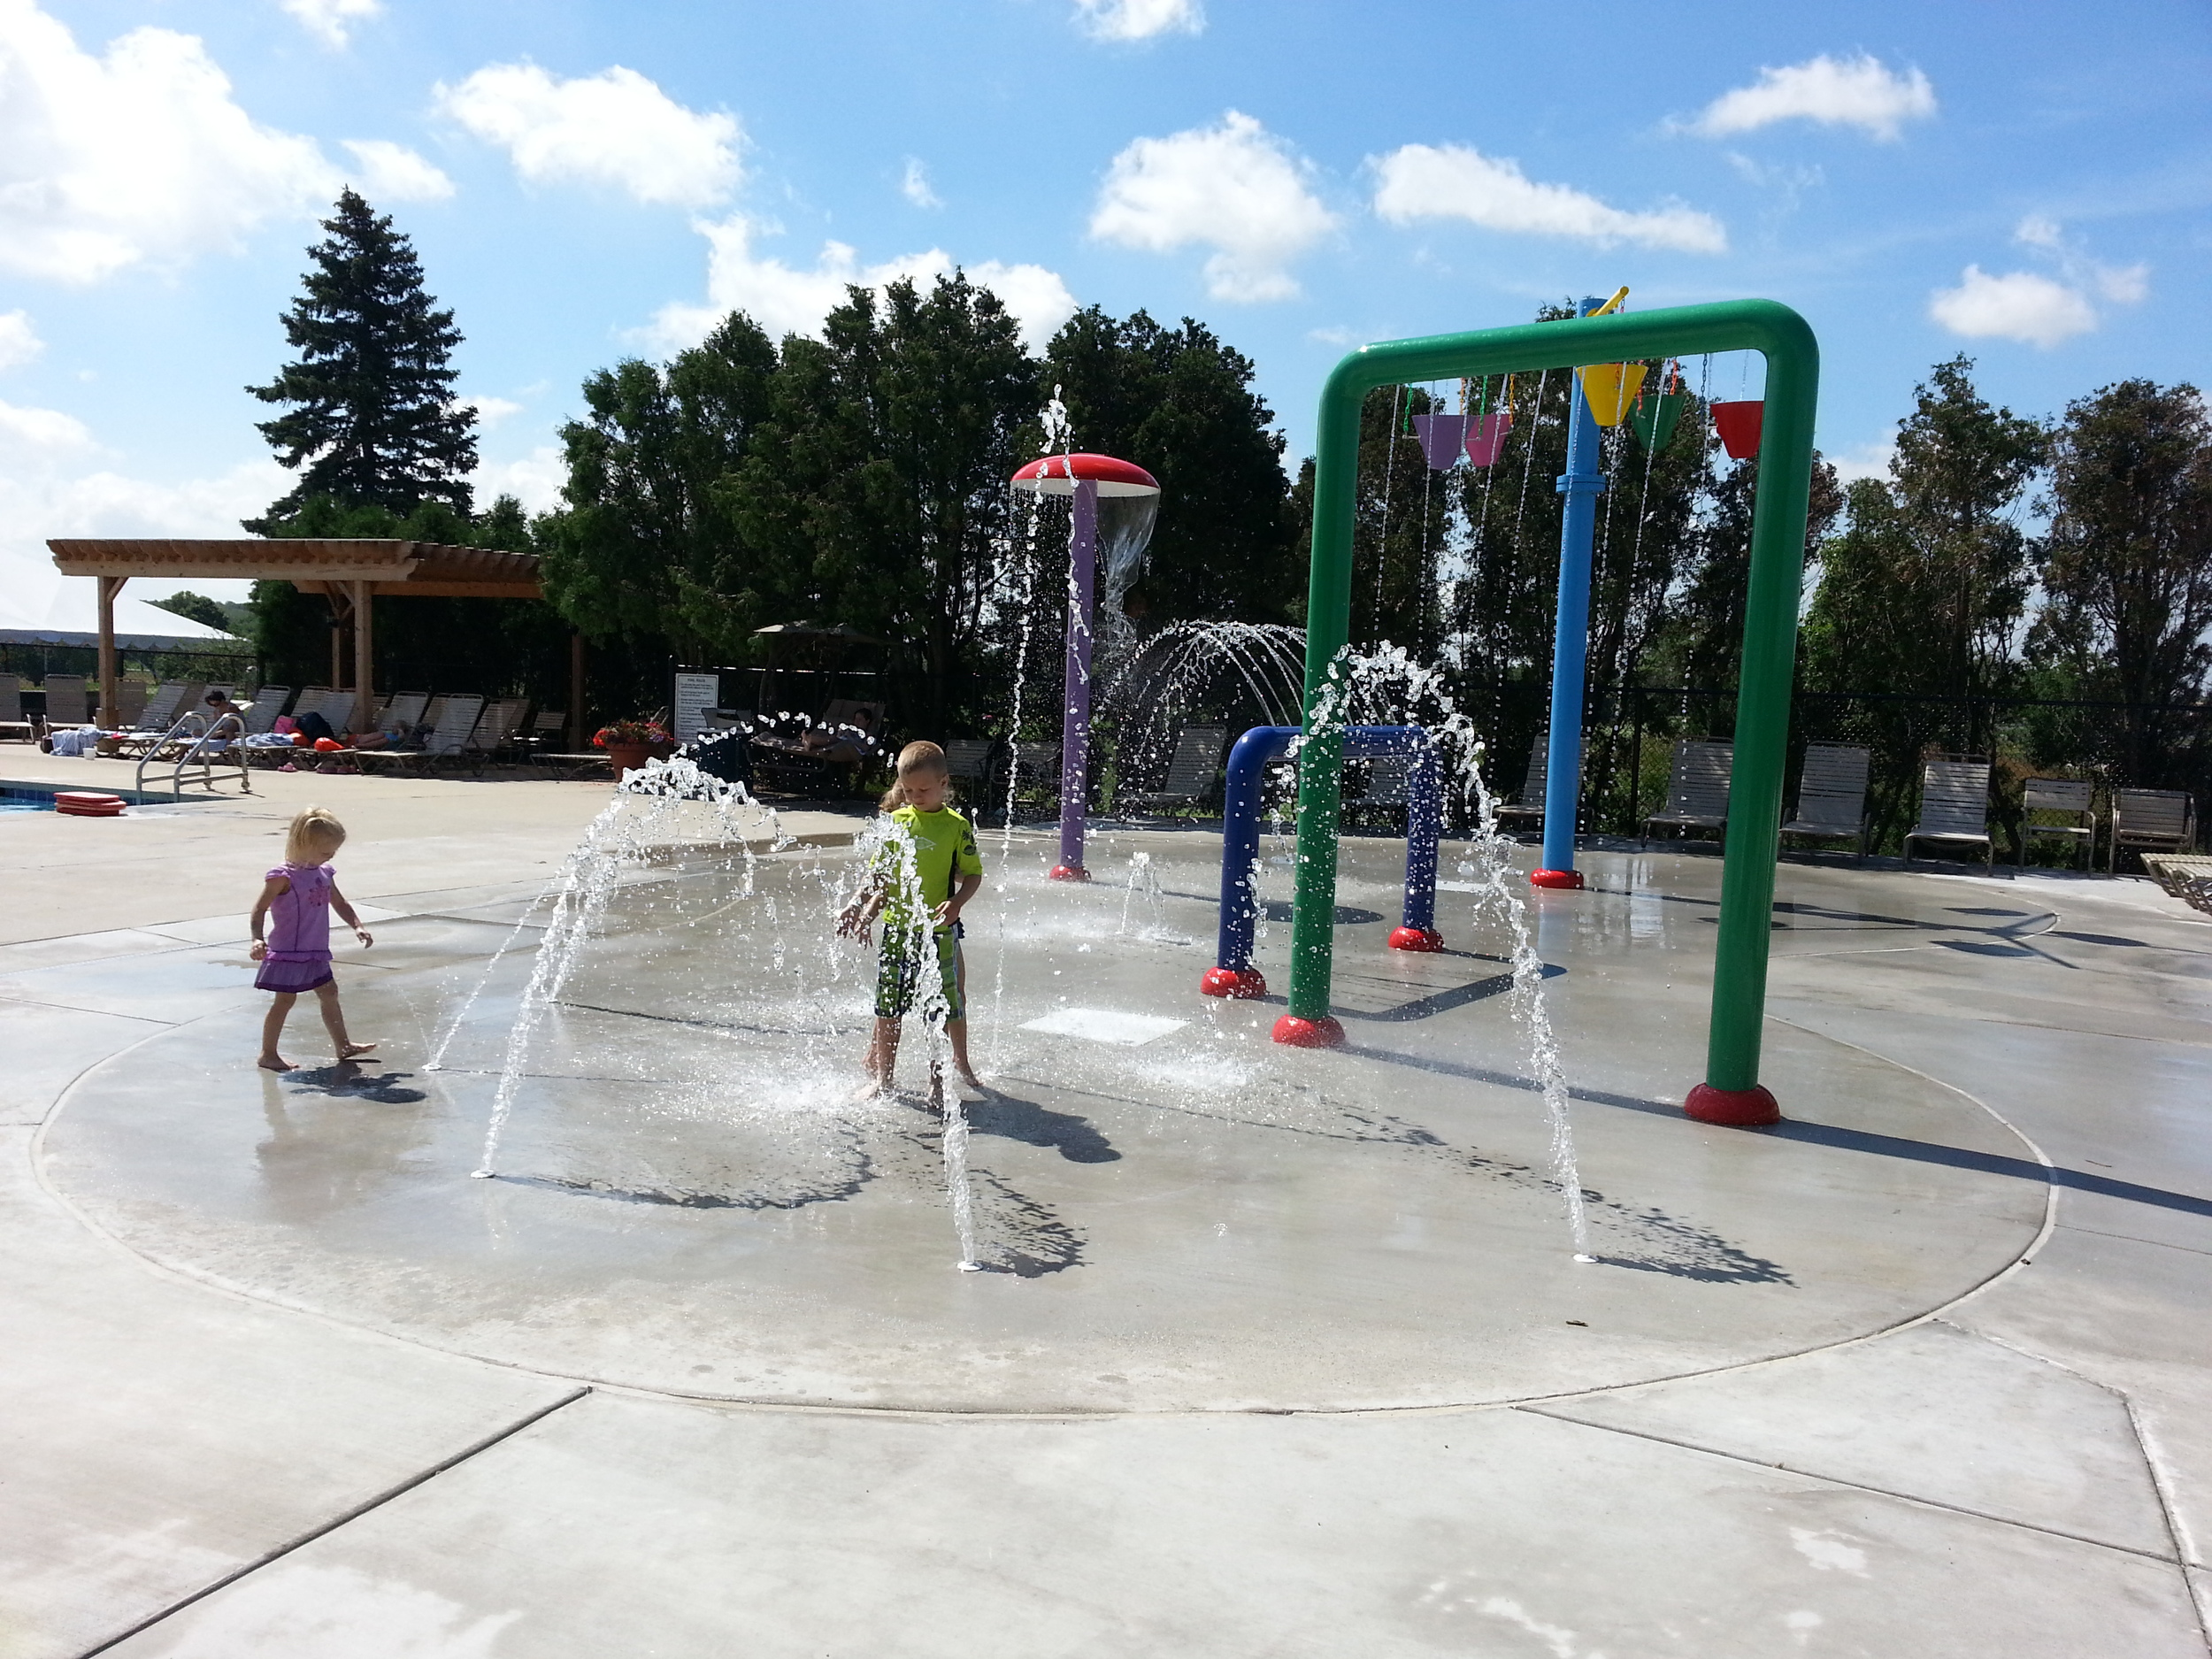 Outdoor splash pad area at Westmoor Country Club in Brookfield, WI